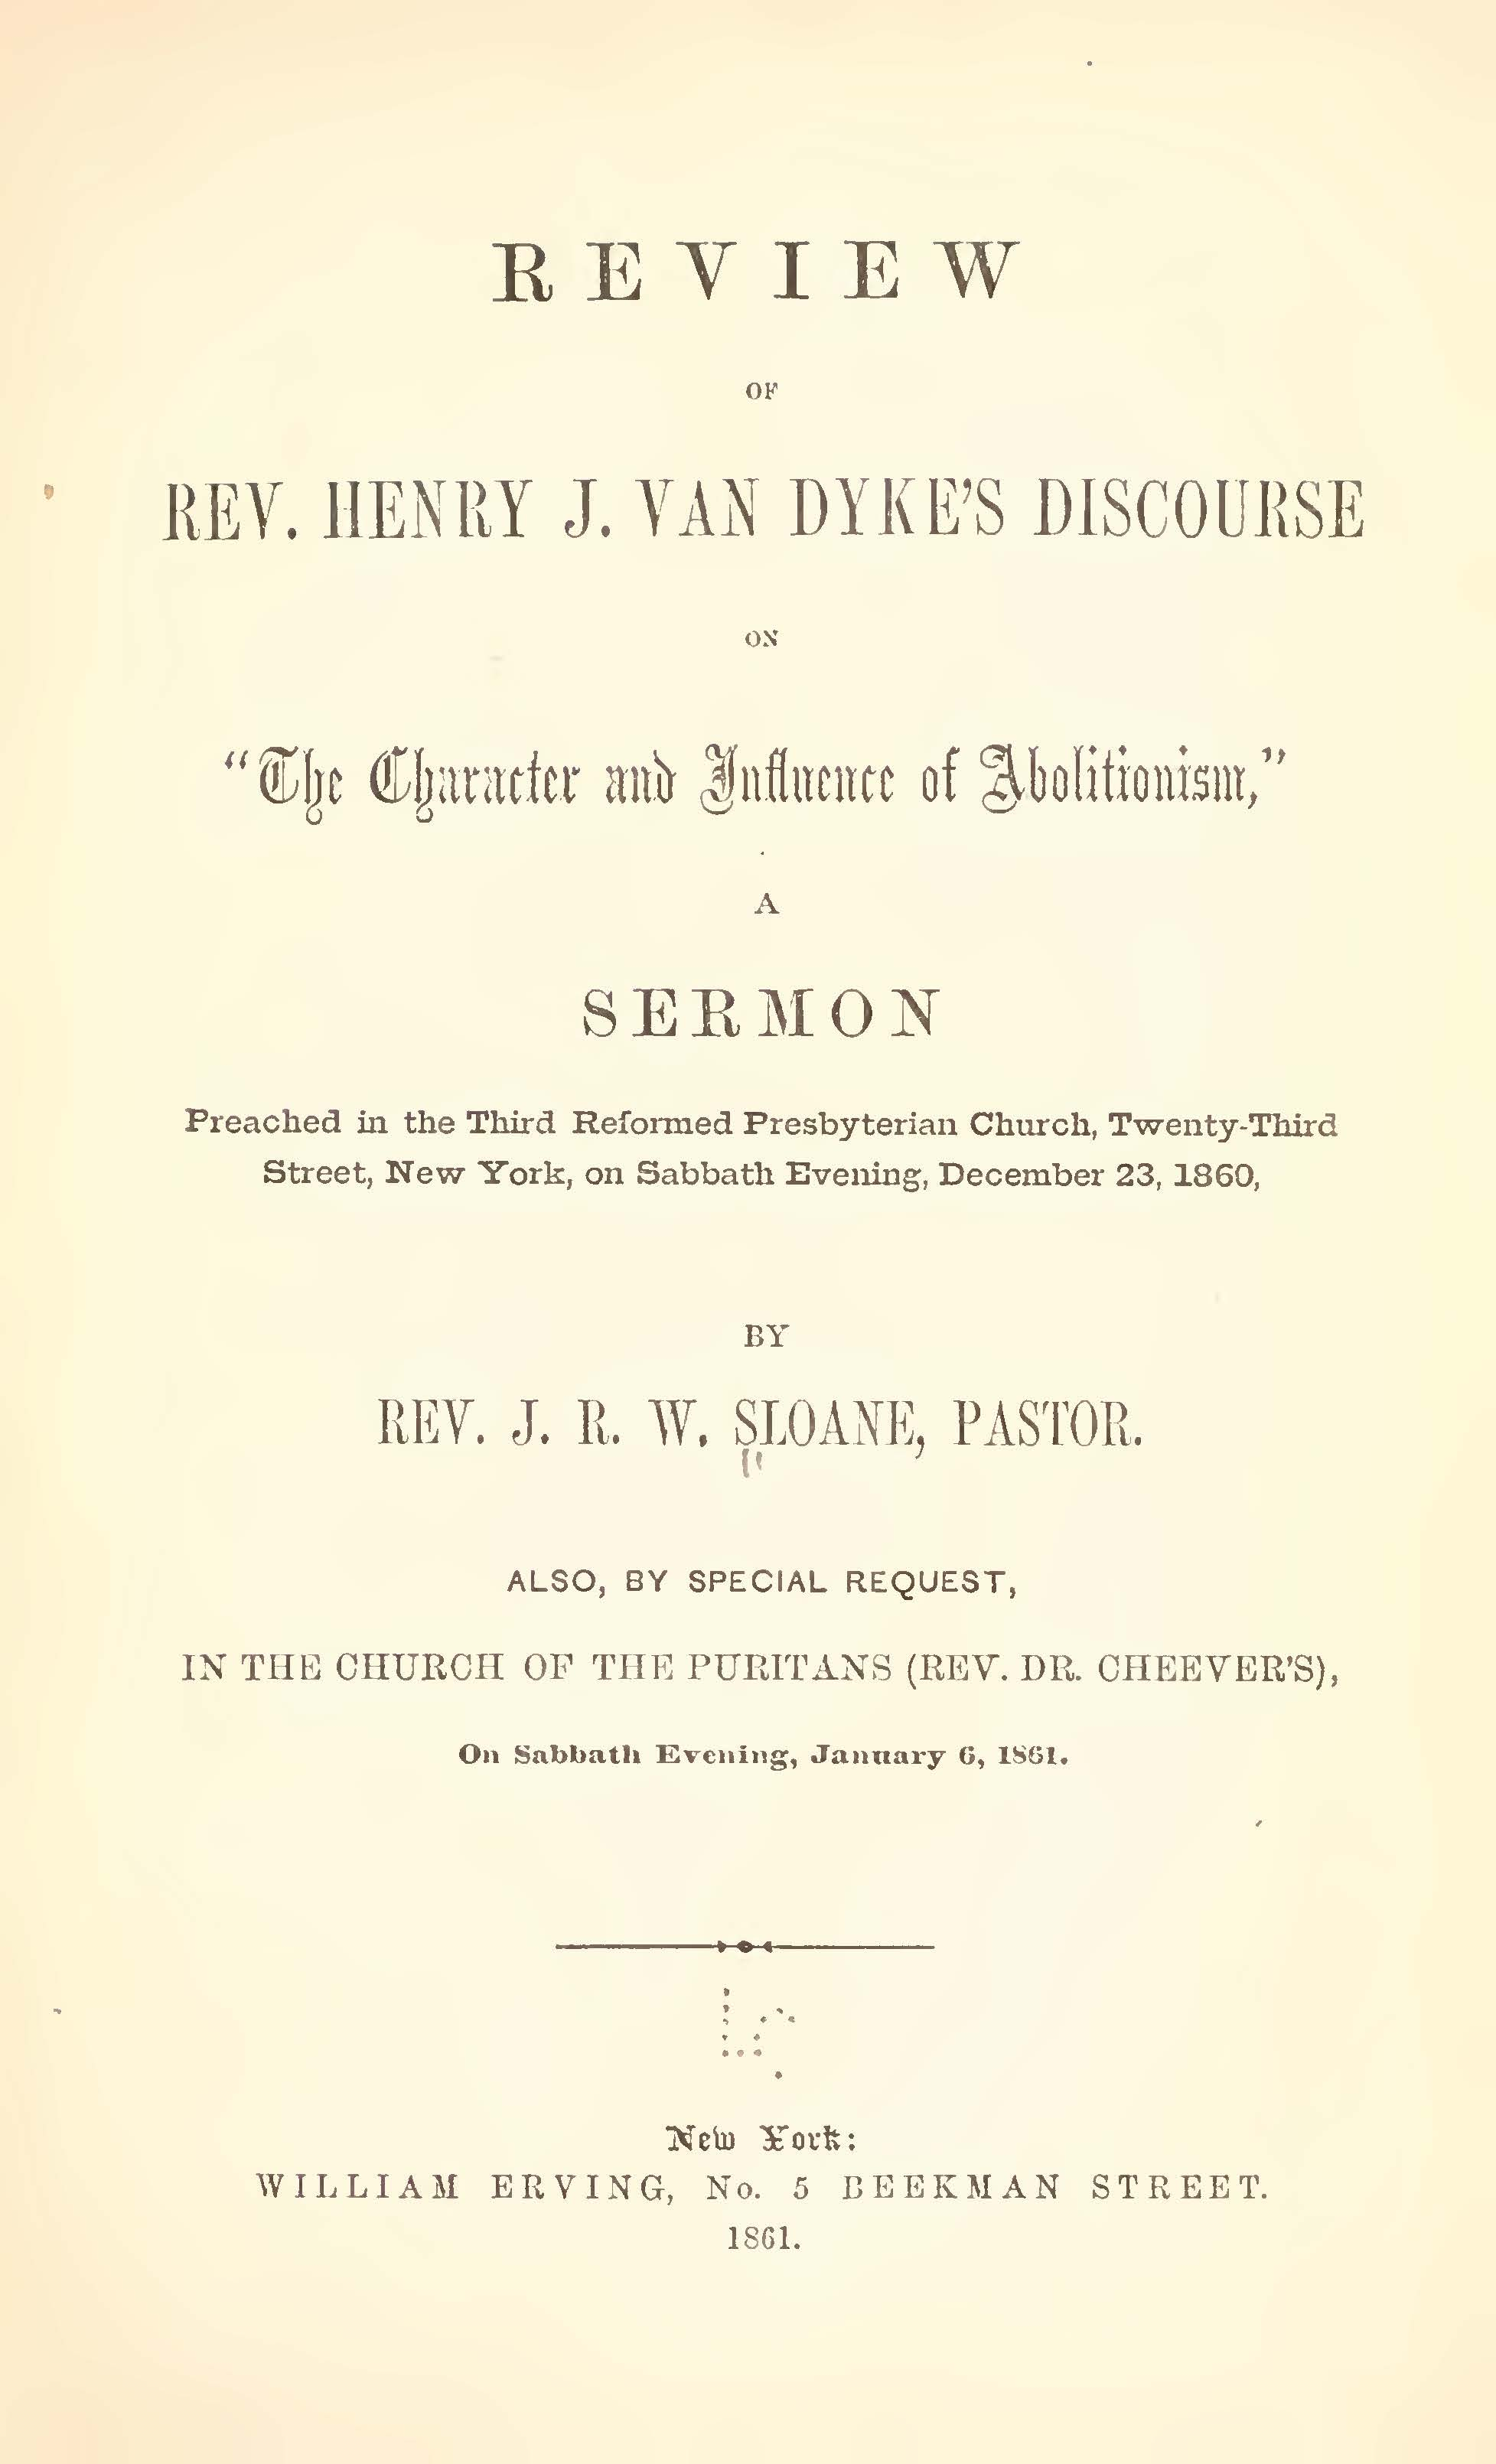 Sloane, James Renwick Wilson, Review of Rev. Henry J. Van Dyke's Discourse on The Character and Influence of Abolitionism Title Page.jpg